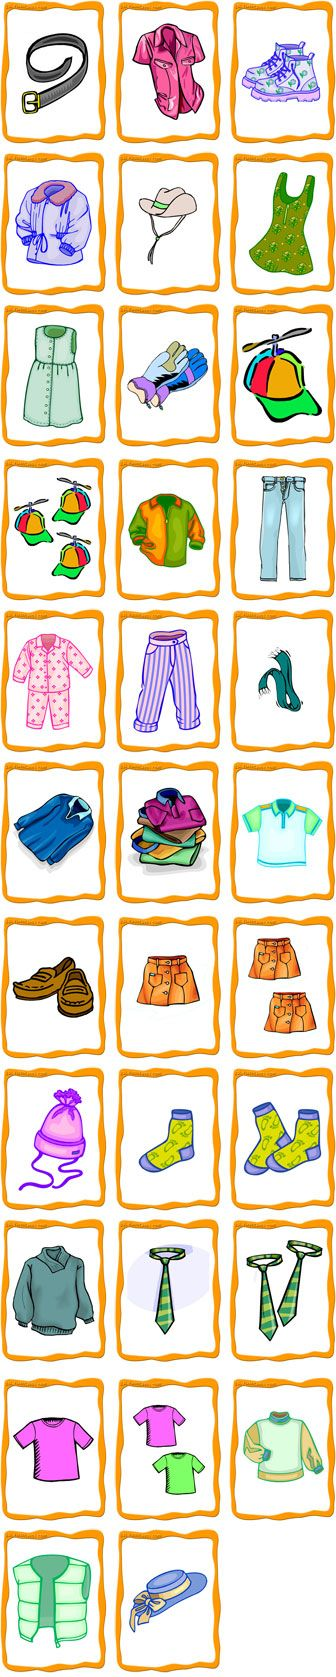 Clothing FlashCards Preview More